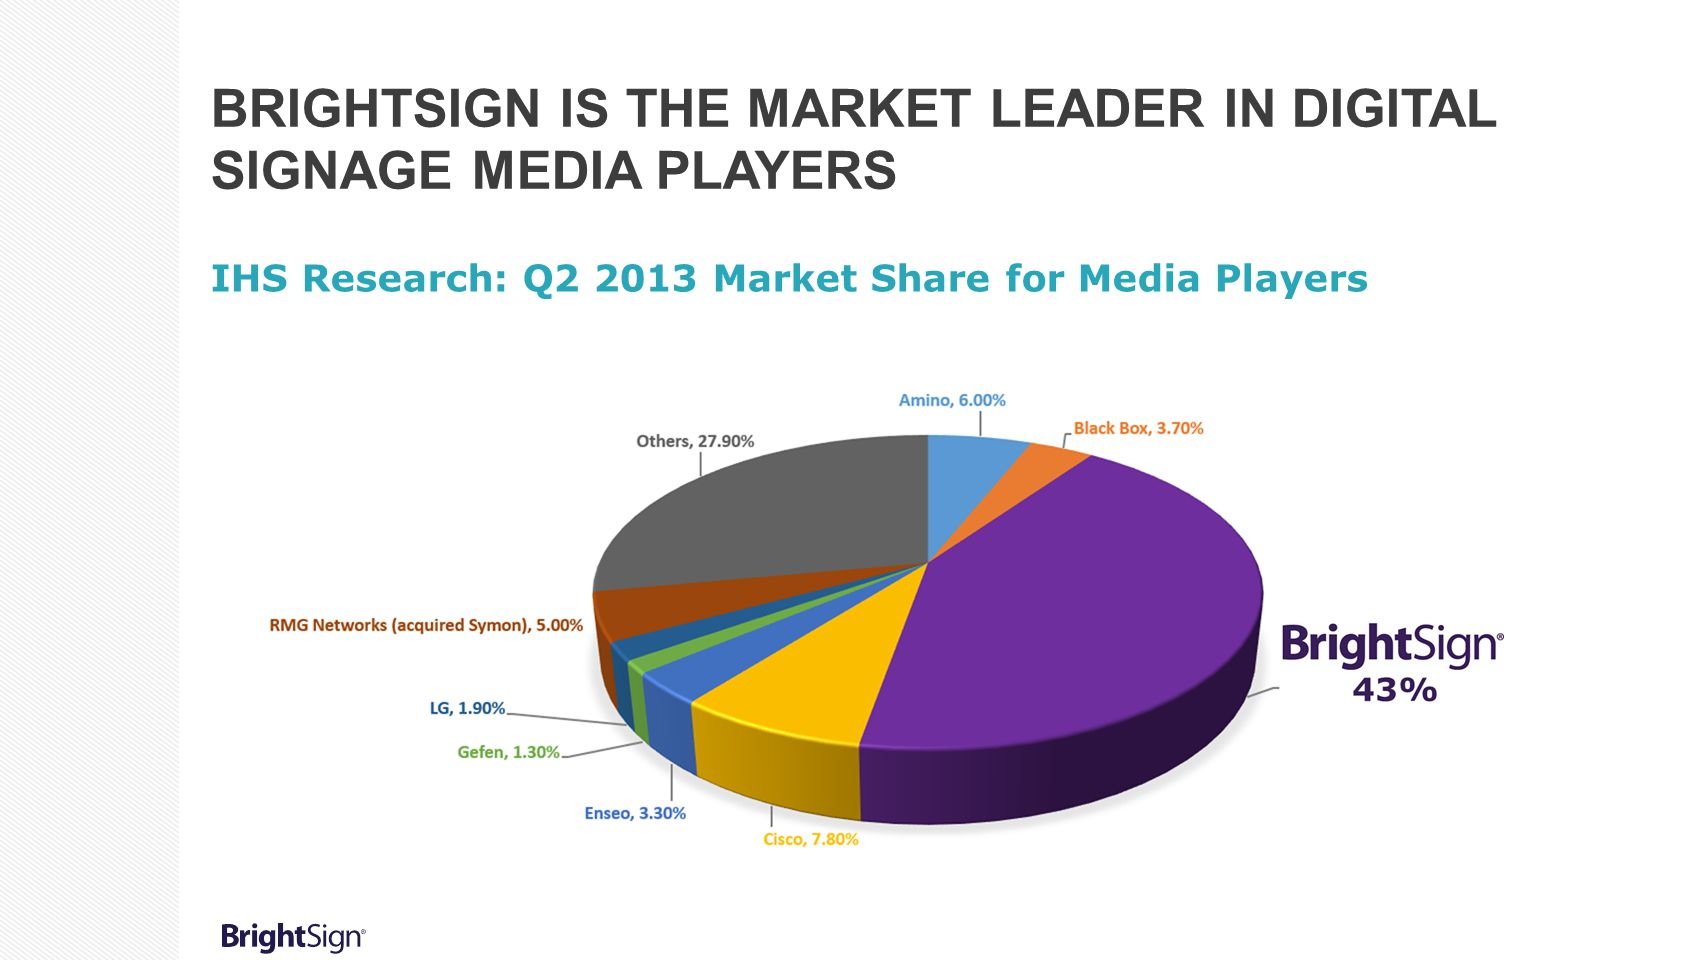 BrightSign is the Market Leader in Digital Signage Media Players